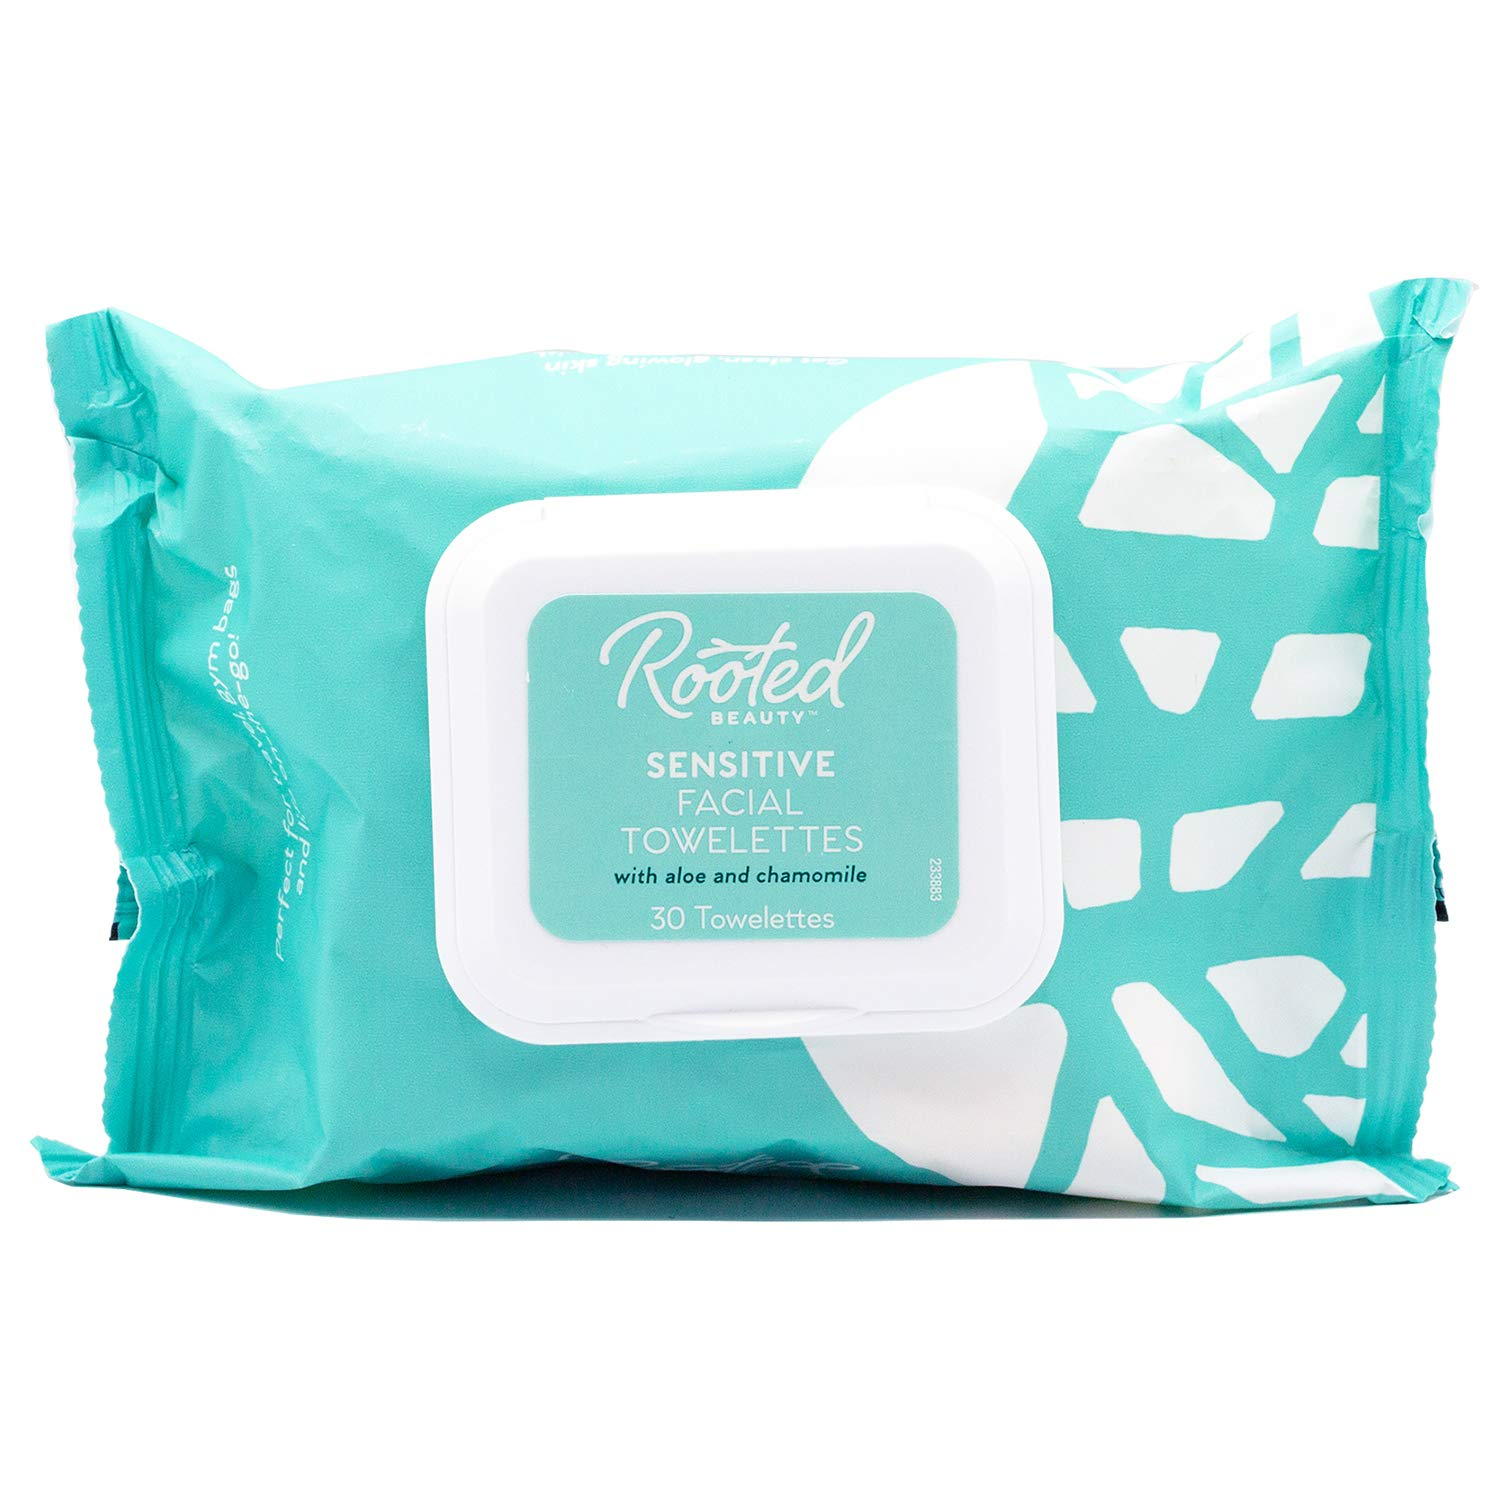 Rooted Beauty Sensitive Skin Facial Towelettes- Makeup Remover Facial Wipes- Face Cleansing Wipes for Women